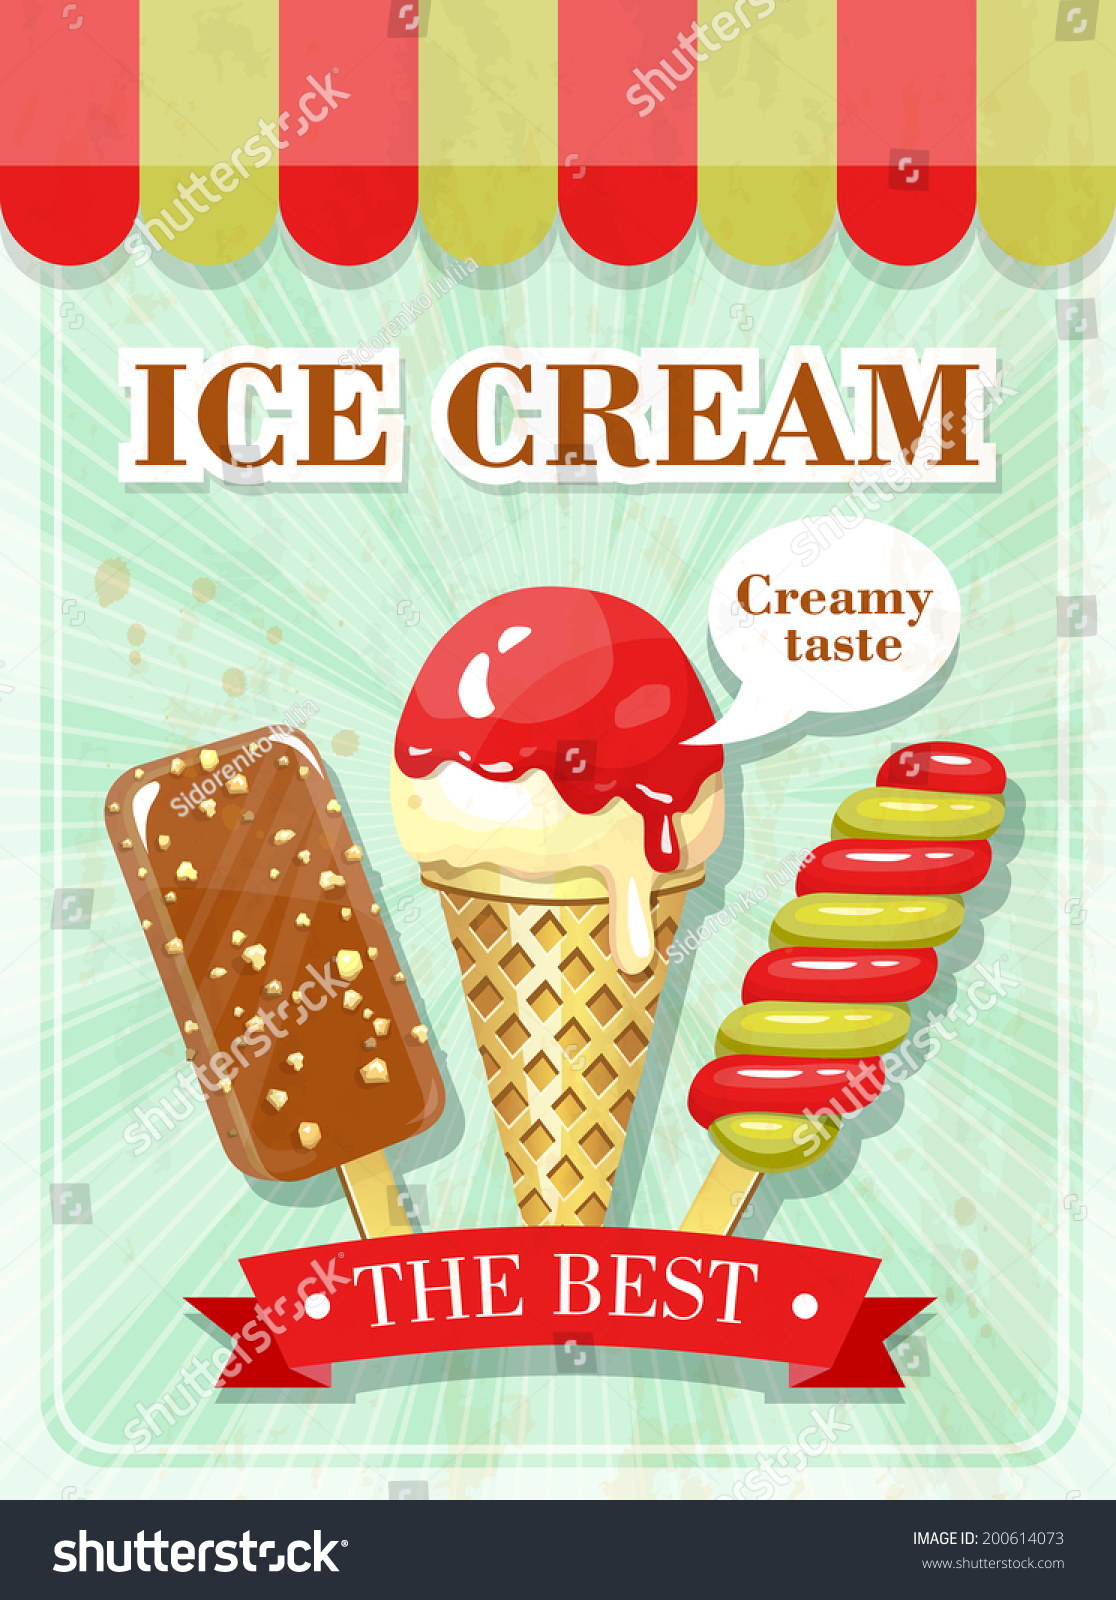 Vintage Ice Cream Poster Stock Vector 200614073 - Shutterstock